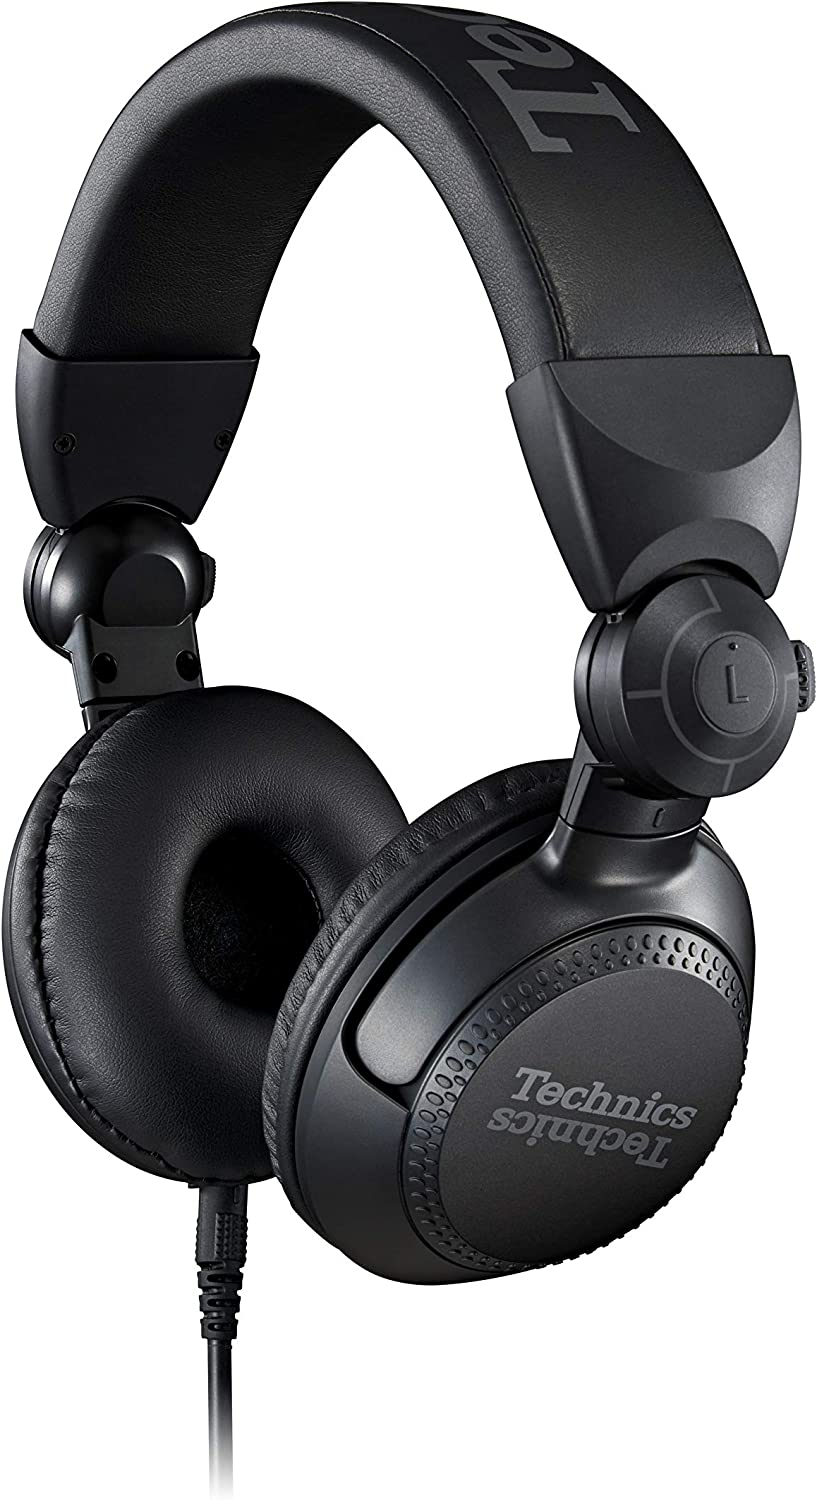 Technics Professional DJ Headphones with 40mm CCAW Voice Coil Drivers, 270° Swivel Housing and Locking Detachable Cord; Lightweight, Foldable High Input - EAH-DJ1200 (Black)